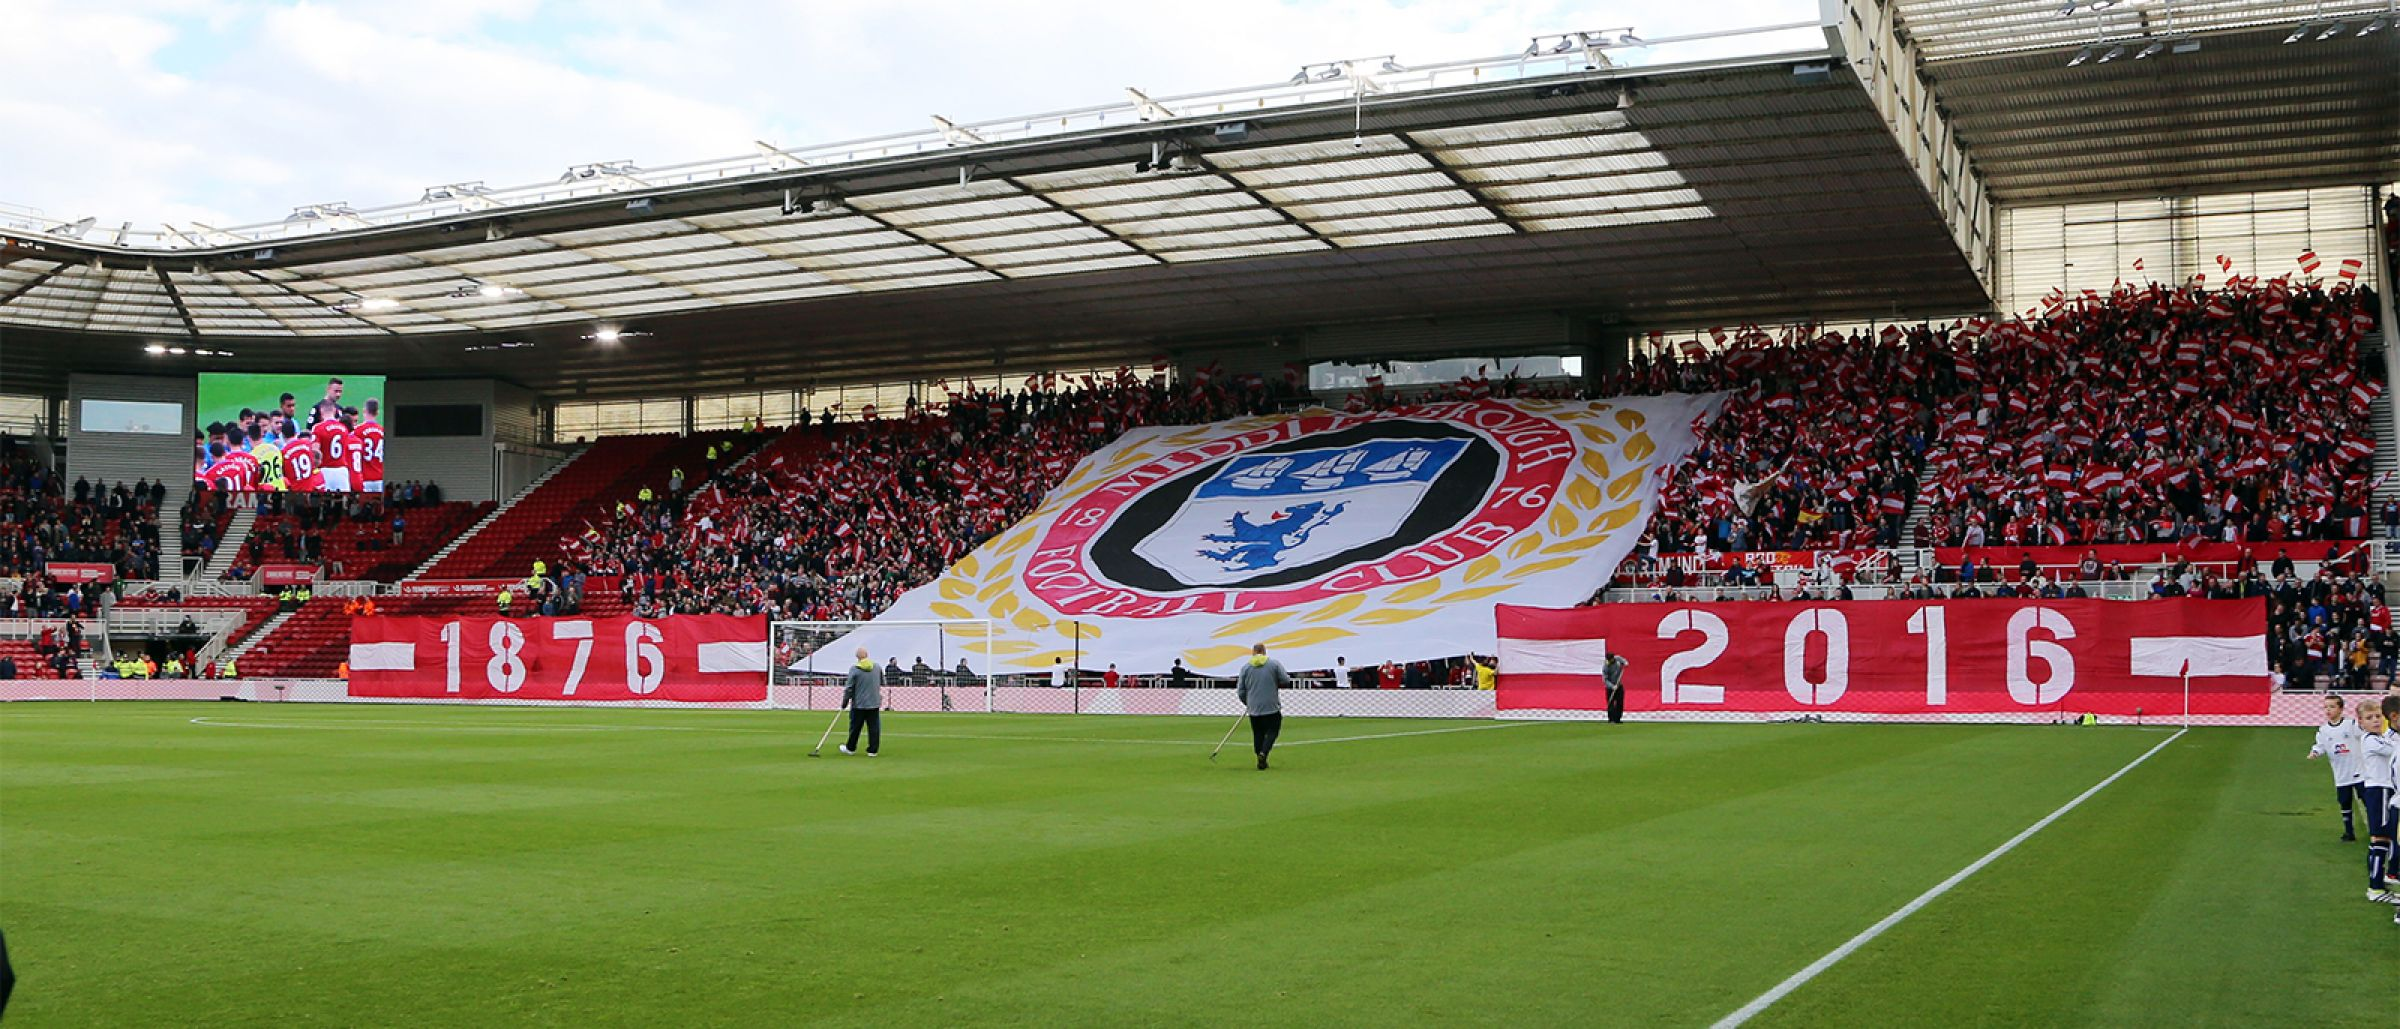 A large banner display in the South Stand